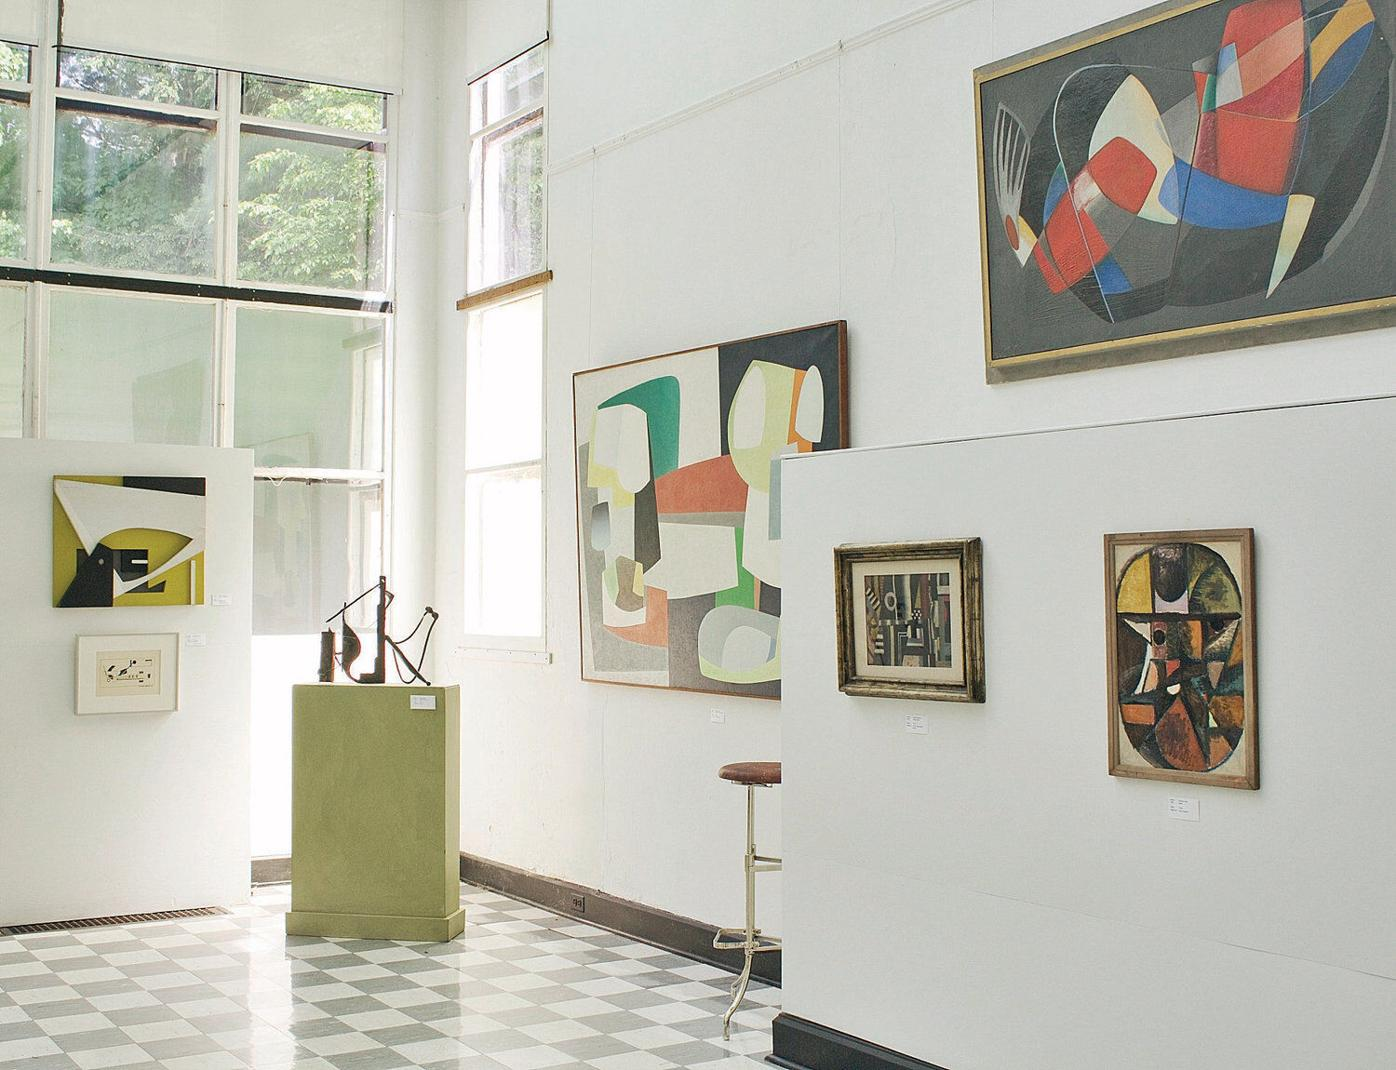 A collection of 'unseen' abstract art goes on view